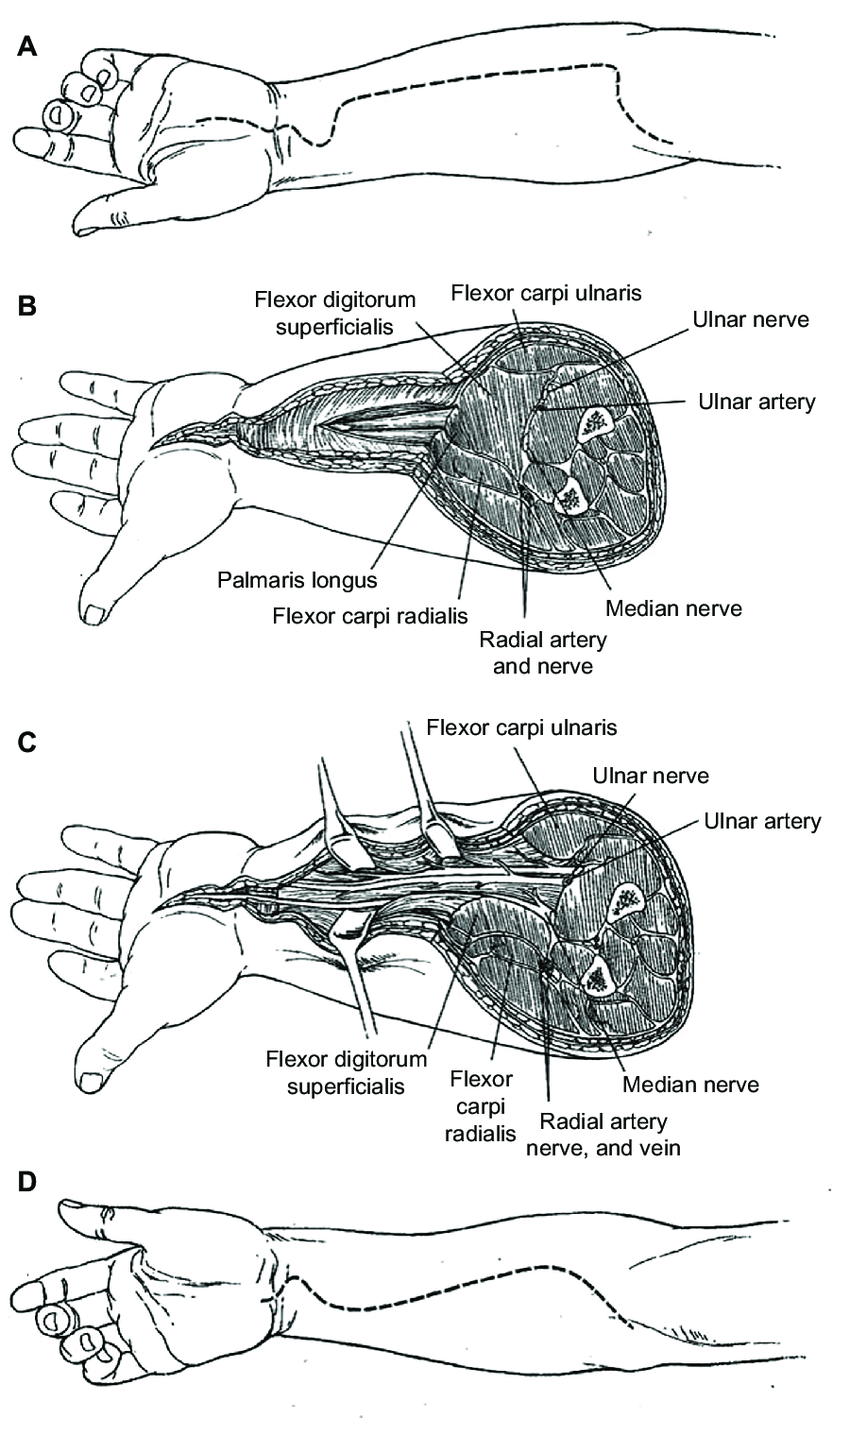 Surgical approaches to the volar compartment of the